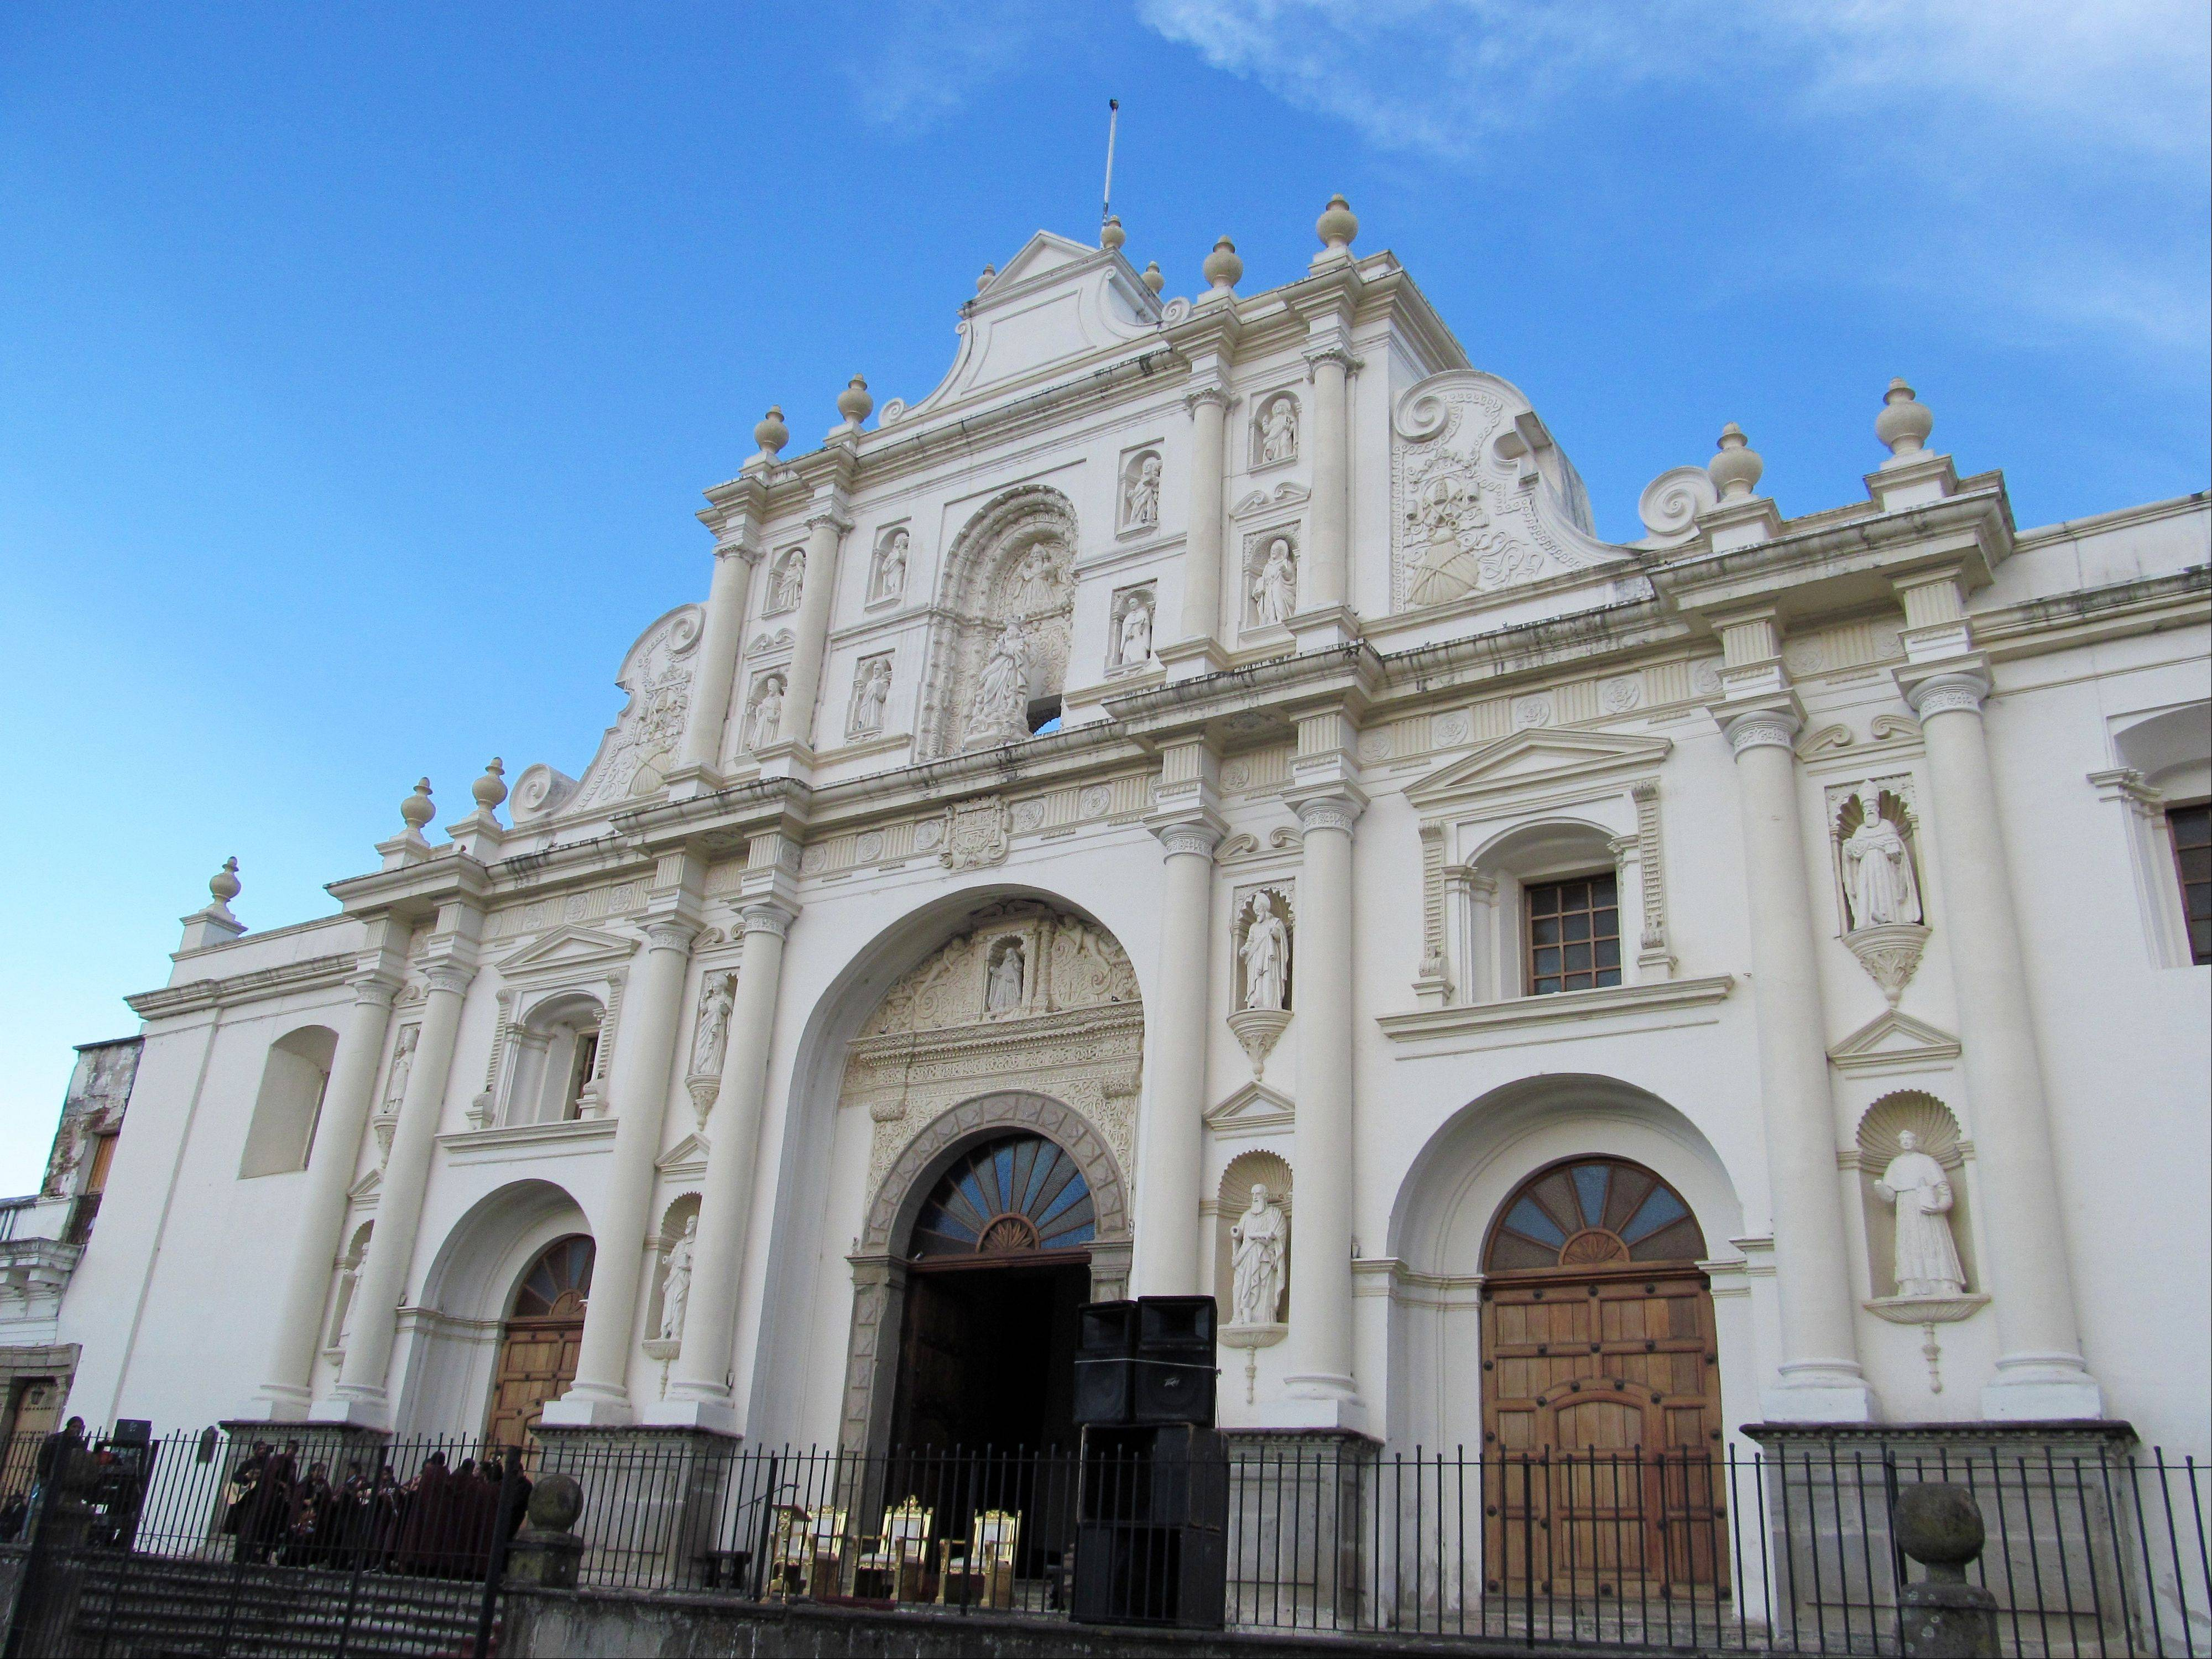 Catedral de Santiago on the main square in Antigua, Guatemala, the country�s former capital. The church is considered a symbol of the city, which boasts one of the best collections of Spanish colonial buildings in the Americas and is a popular destination for tourists.